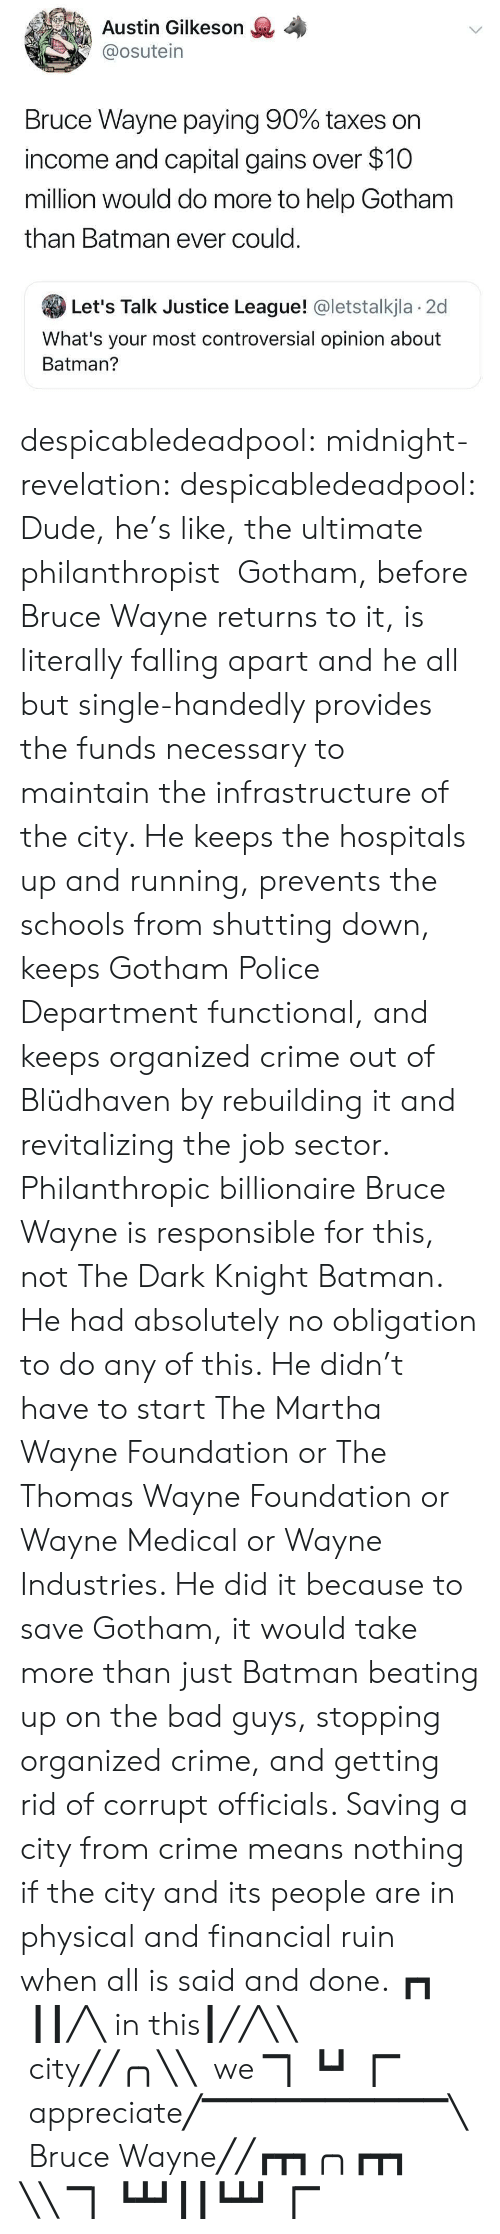 maintain: Austin Gilkeson  @osutein  Bruce Wayne paying 90% taxes on  income and capital gains over $10  million would do more to help Gotham  than Batman ever could.  Let's Talk Justice League! @letstalkjla 2d  What's your most controversial opinion about  Batman? despicabledeadpool:  midnight-revelation: despicabledeadpool:  Dude, he's like, the ultimate philanthropist   Gotham, before Bruce Wayne returns to it, is literally falling apart and he all but single-handedly provides the funds necessary to maintain the infrastructure of the city. He keeps the hospitals up and running, prevents the schools from shutting down, keeps Gotham Police Department functional, and keeps organized crime out of Blüdhaven by rebuilding it and revitalizing the job sector. Philanthropic billionaire Bruce Wayne is responsible for this, not The Dark Knight Batman. He had absolutely no obligation to do any of this. He didn't have to start The Martha Wayne Foundation or The Thomas Wayne Foundation or Wayne Medical or Wayne Industries. He did it because to save Gotham, it would take more than just Batman beating up on the bad guys, stopping organized crime, and getting rid of corrupt officials. Saving a city from crime means nothing if the city and its people are in physical and financial ruin when all is said and done.  ┏┓  ┃┃╱╲ in this┃╱╱╲╲  city╱╱╭╮╲╲  we ▔▏┗┛▕▔    appreciate╱▔▔▔▔▔▔▔▔▔▔╲  Bruce Wayne╱╱┏┳┓╭╮┏┳┓ ╲╲ ▔▏┗┻┛┃┃┗┻┛▕▔